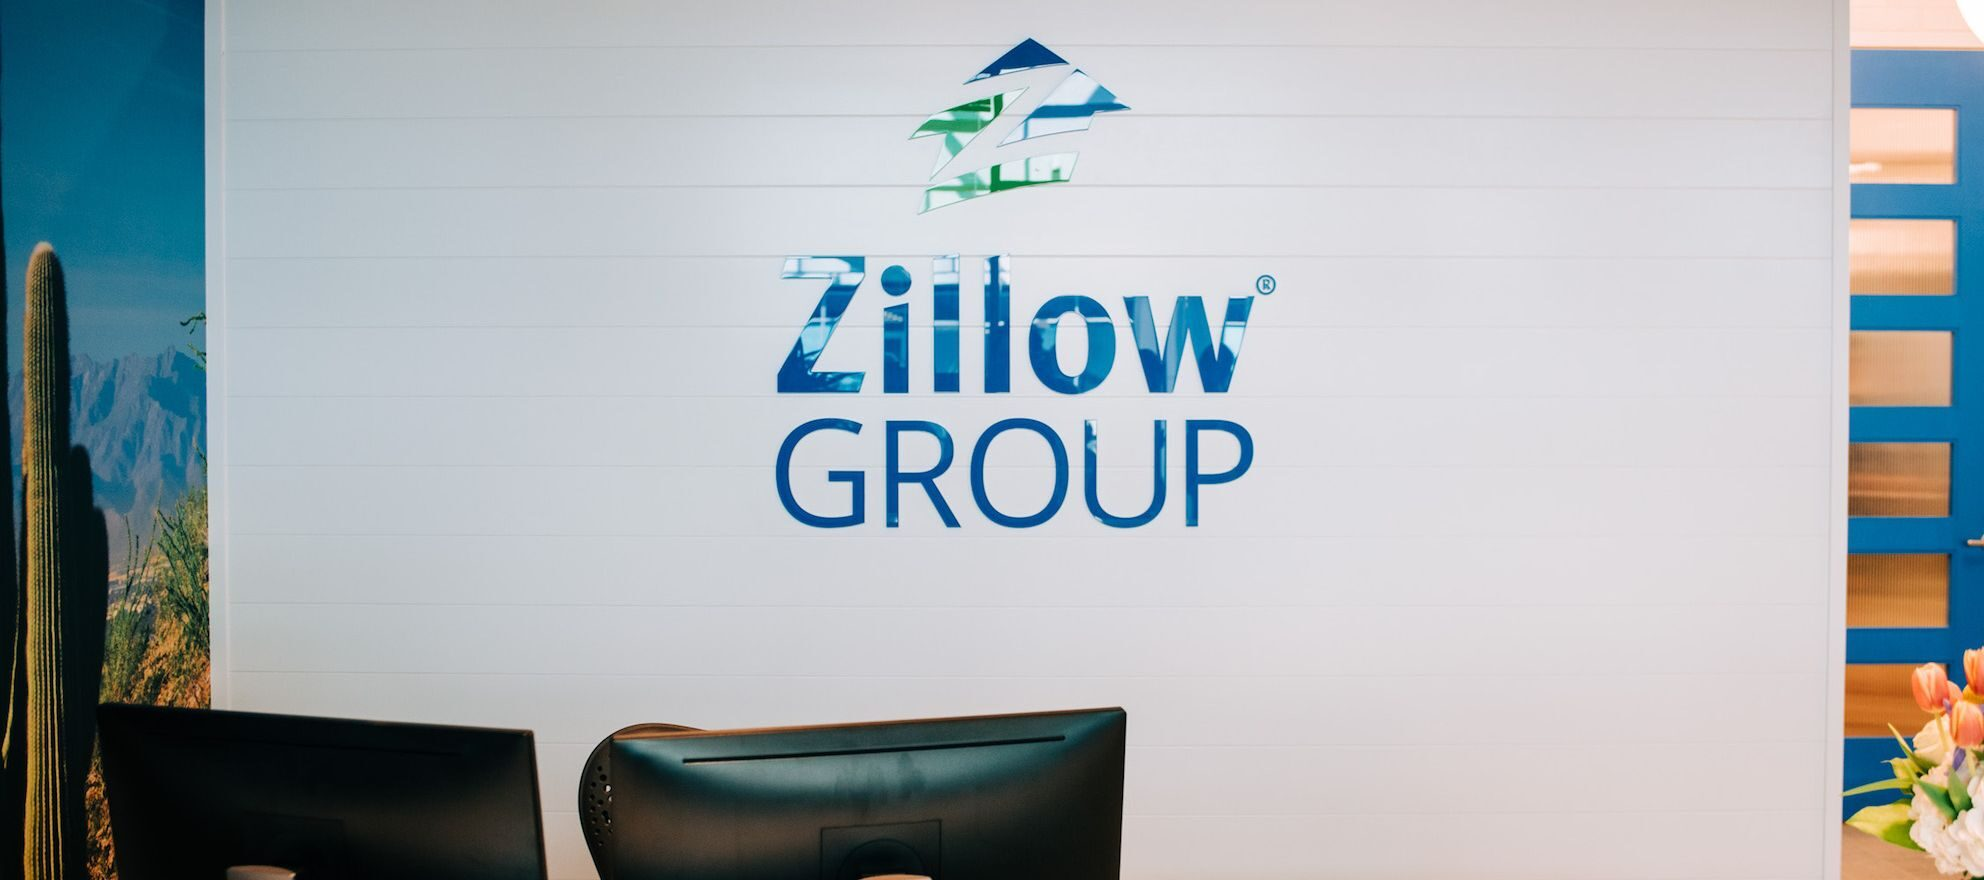 Zillow is testing a closing services platform